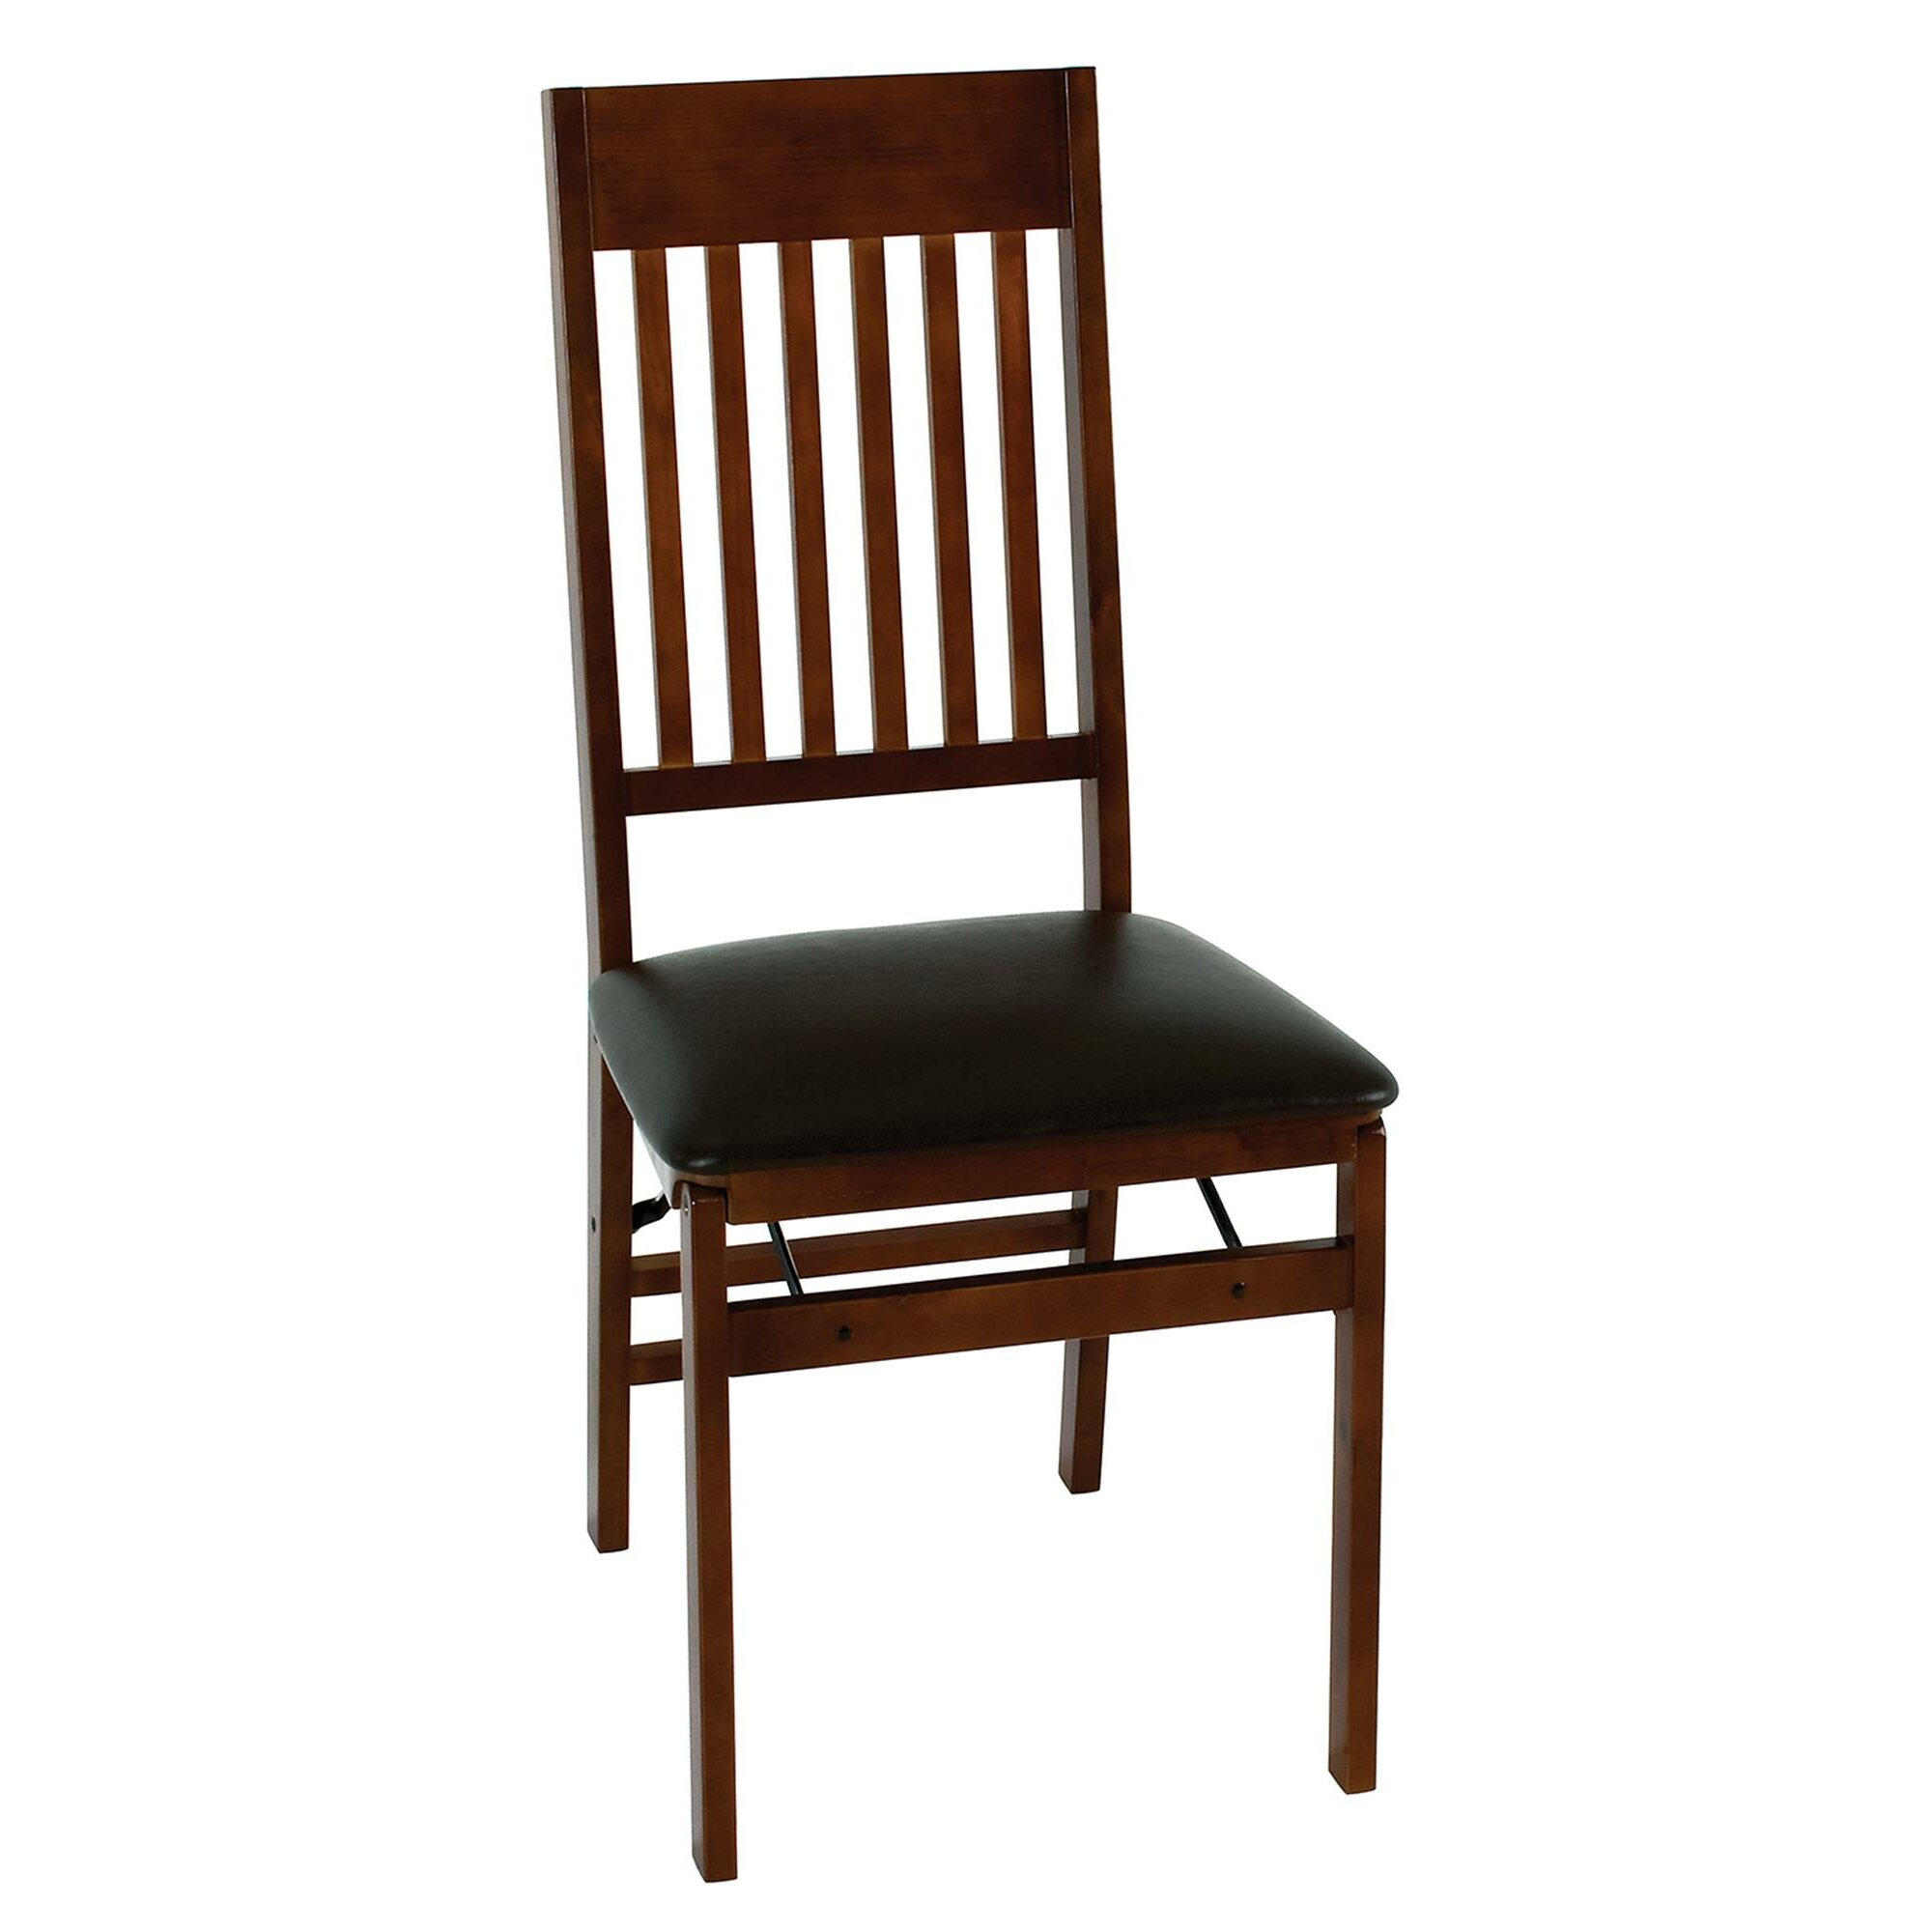 Cosco Home and fice Folding Chair